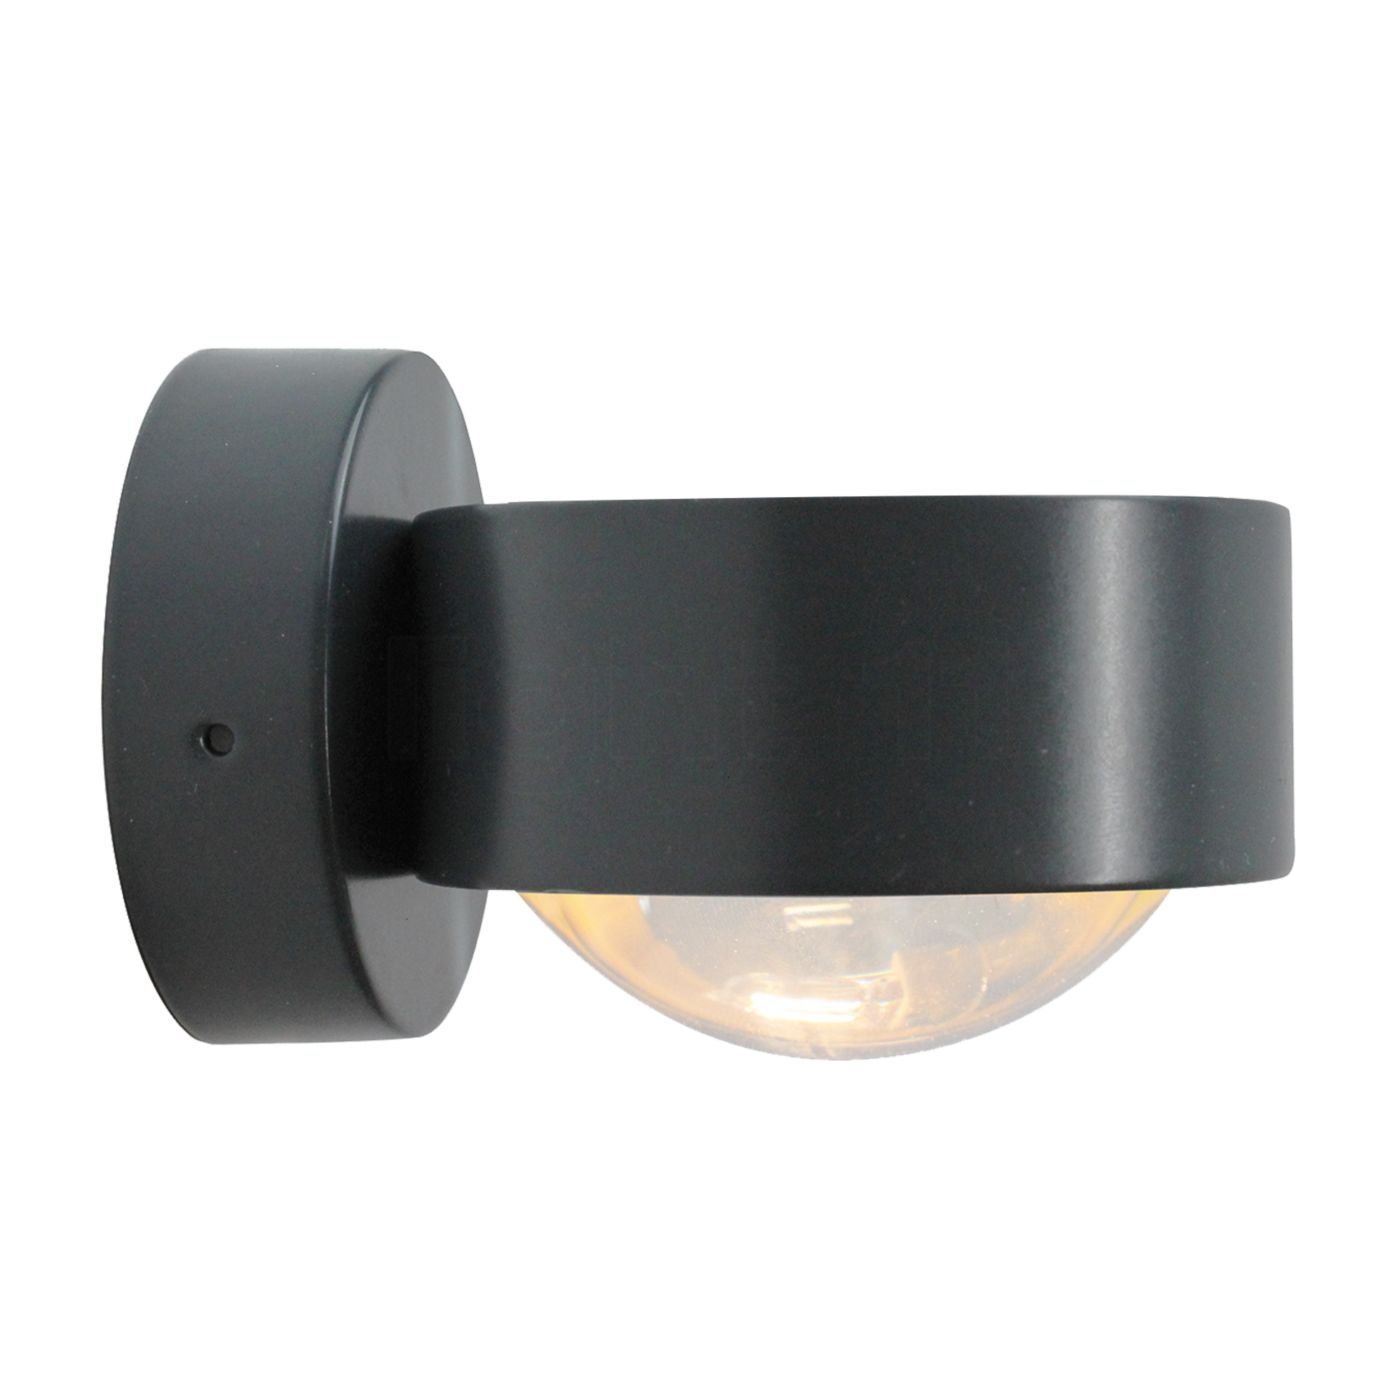 top light puk maxx outdoor wall led wall lights. Black Bedroom Furniture Sets. Home Design Ideas